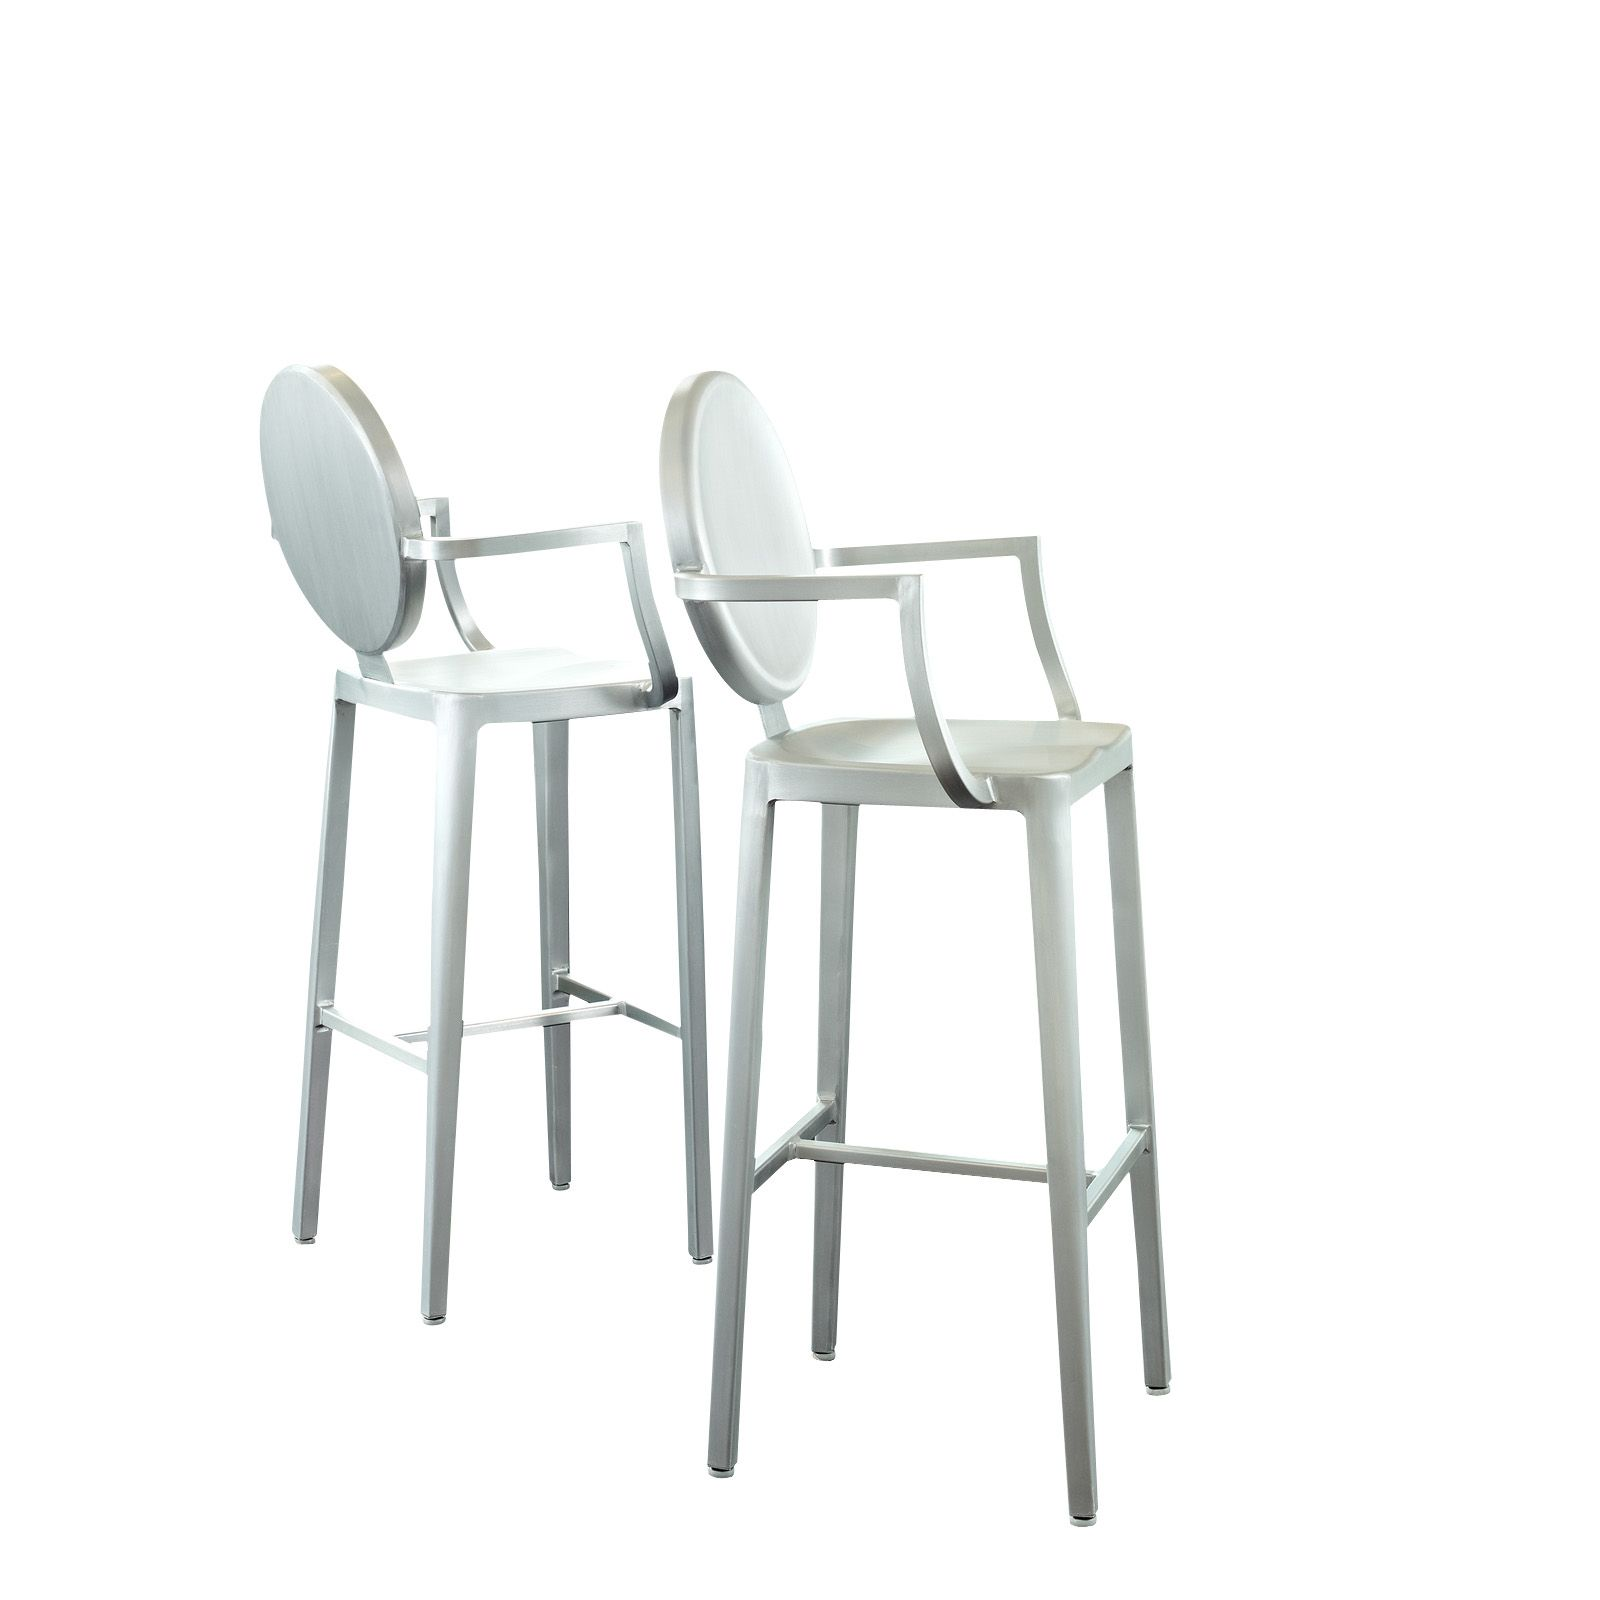 Aluminum Ghost Bar Stool Set in Silver EEI-890 by LexMod. Just the ...